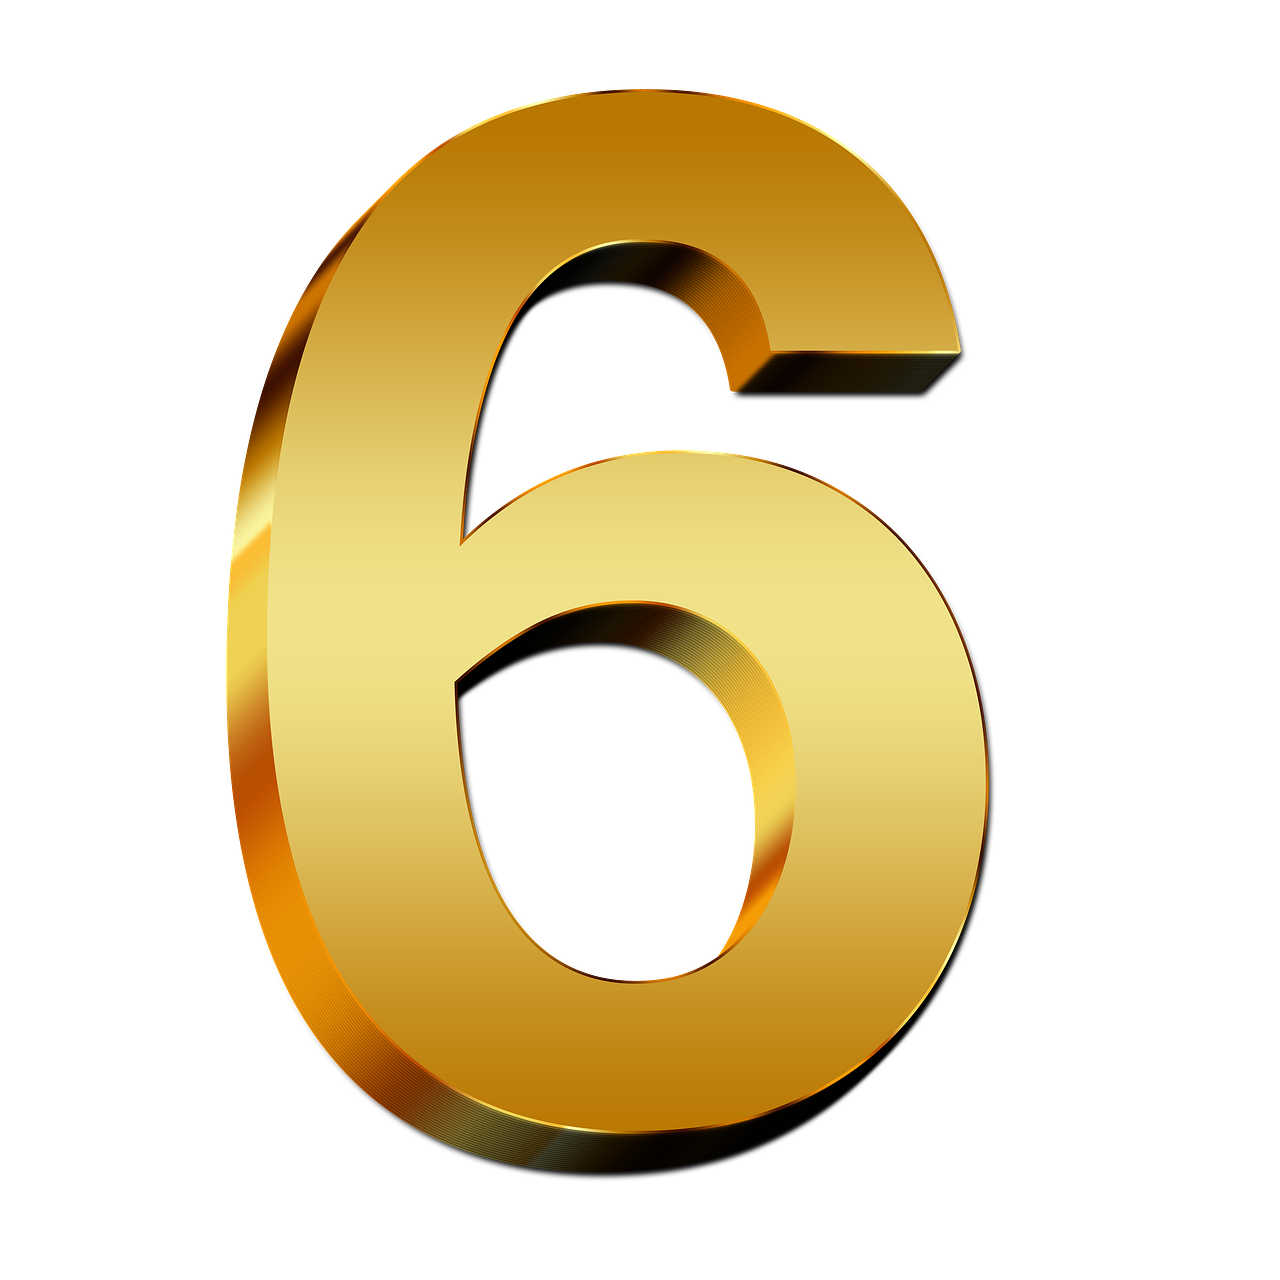 6 clipart gold number. Png clip art